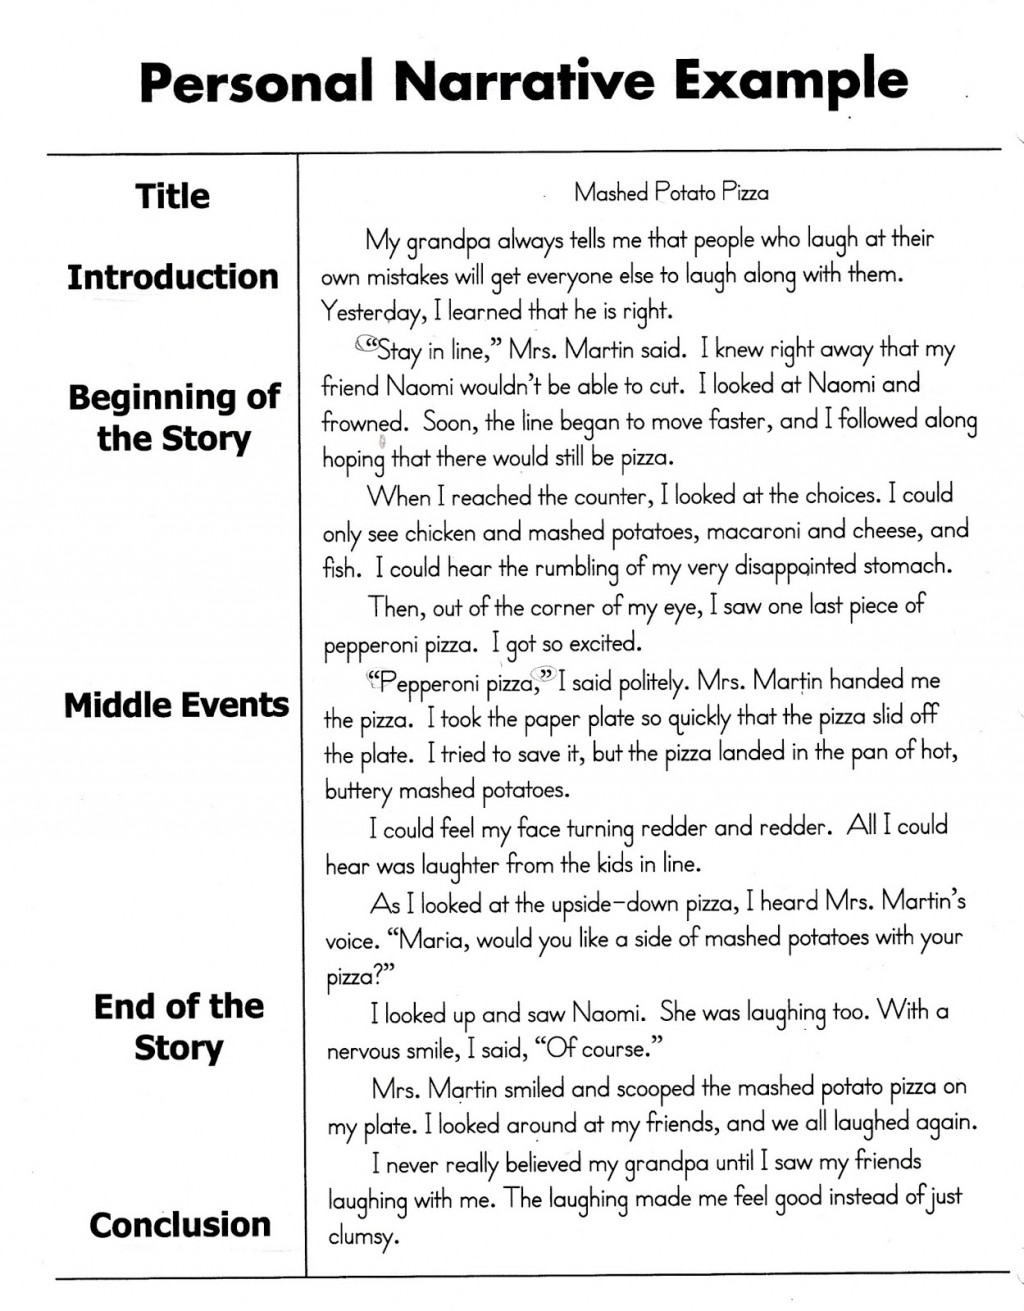 009 Personal20narrative Sample Narrative Essay Wondrous Personal Middle School Apa Format Large